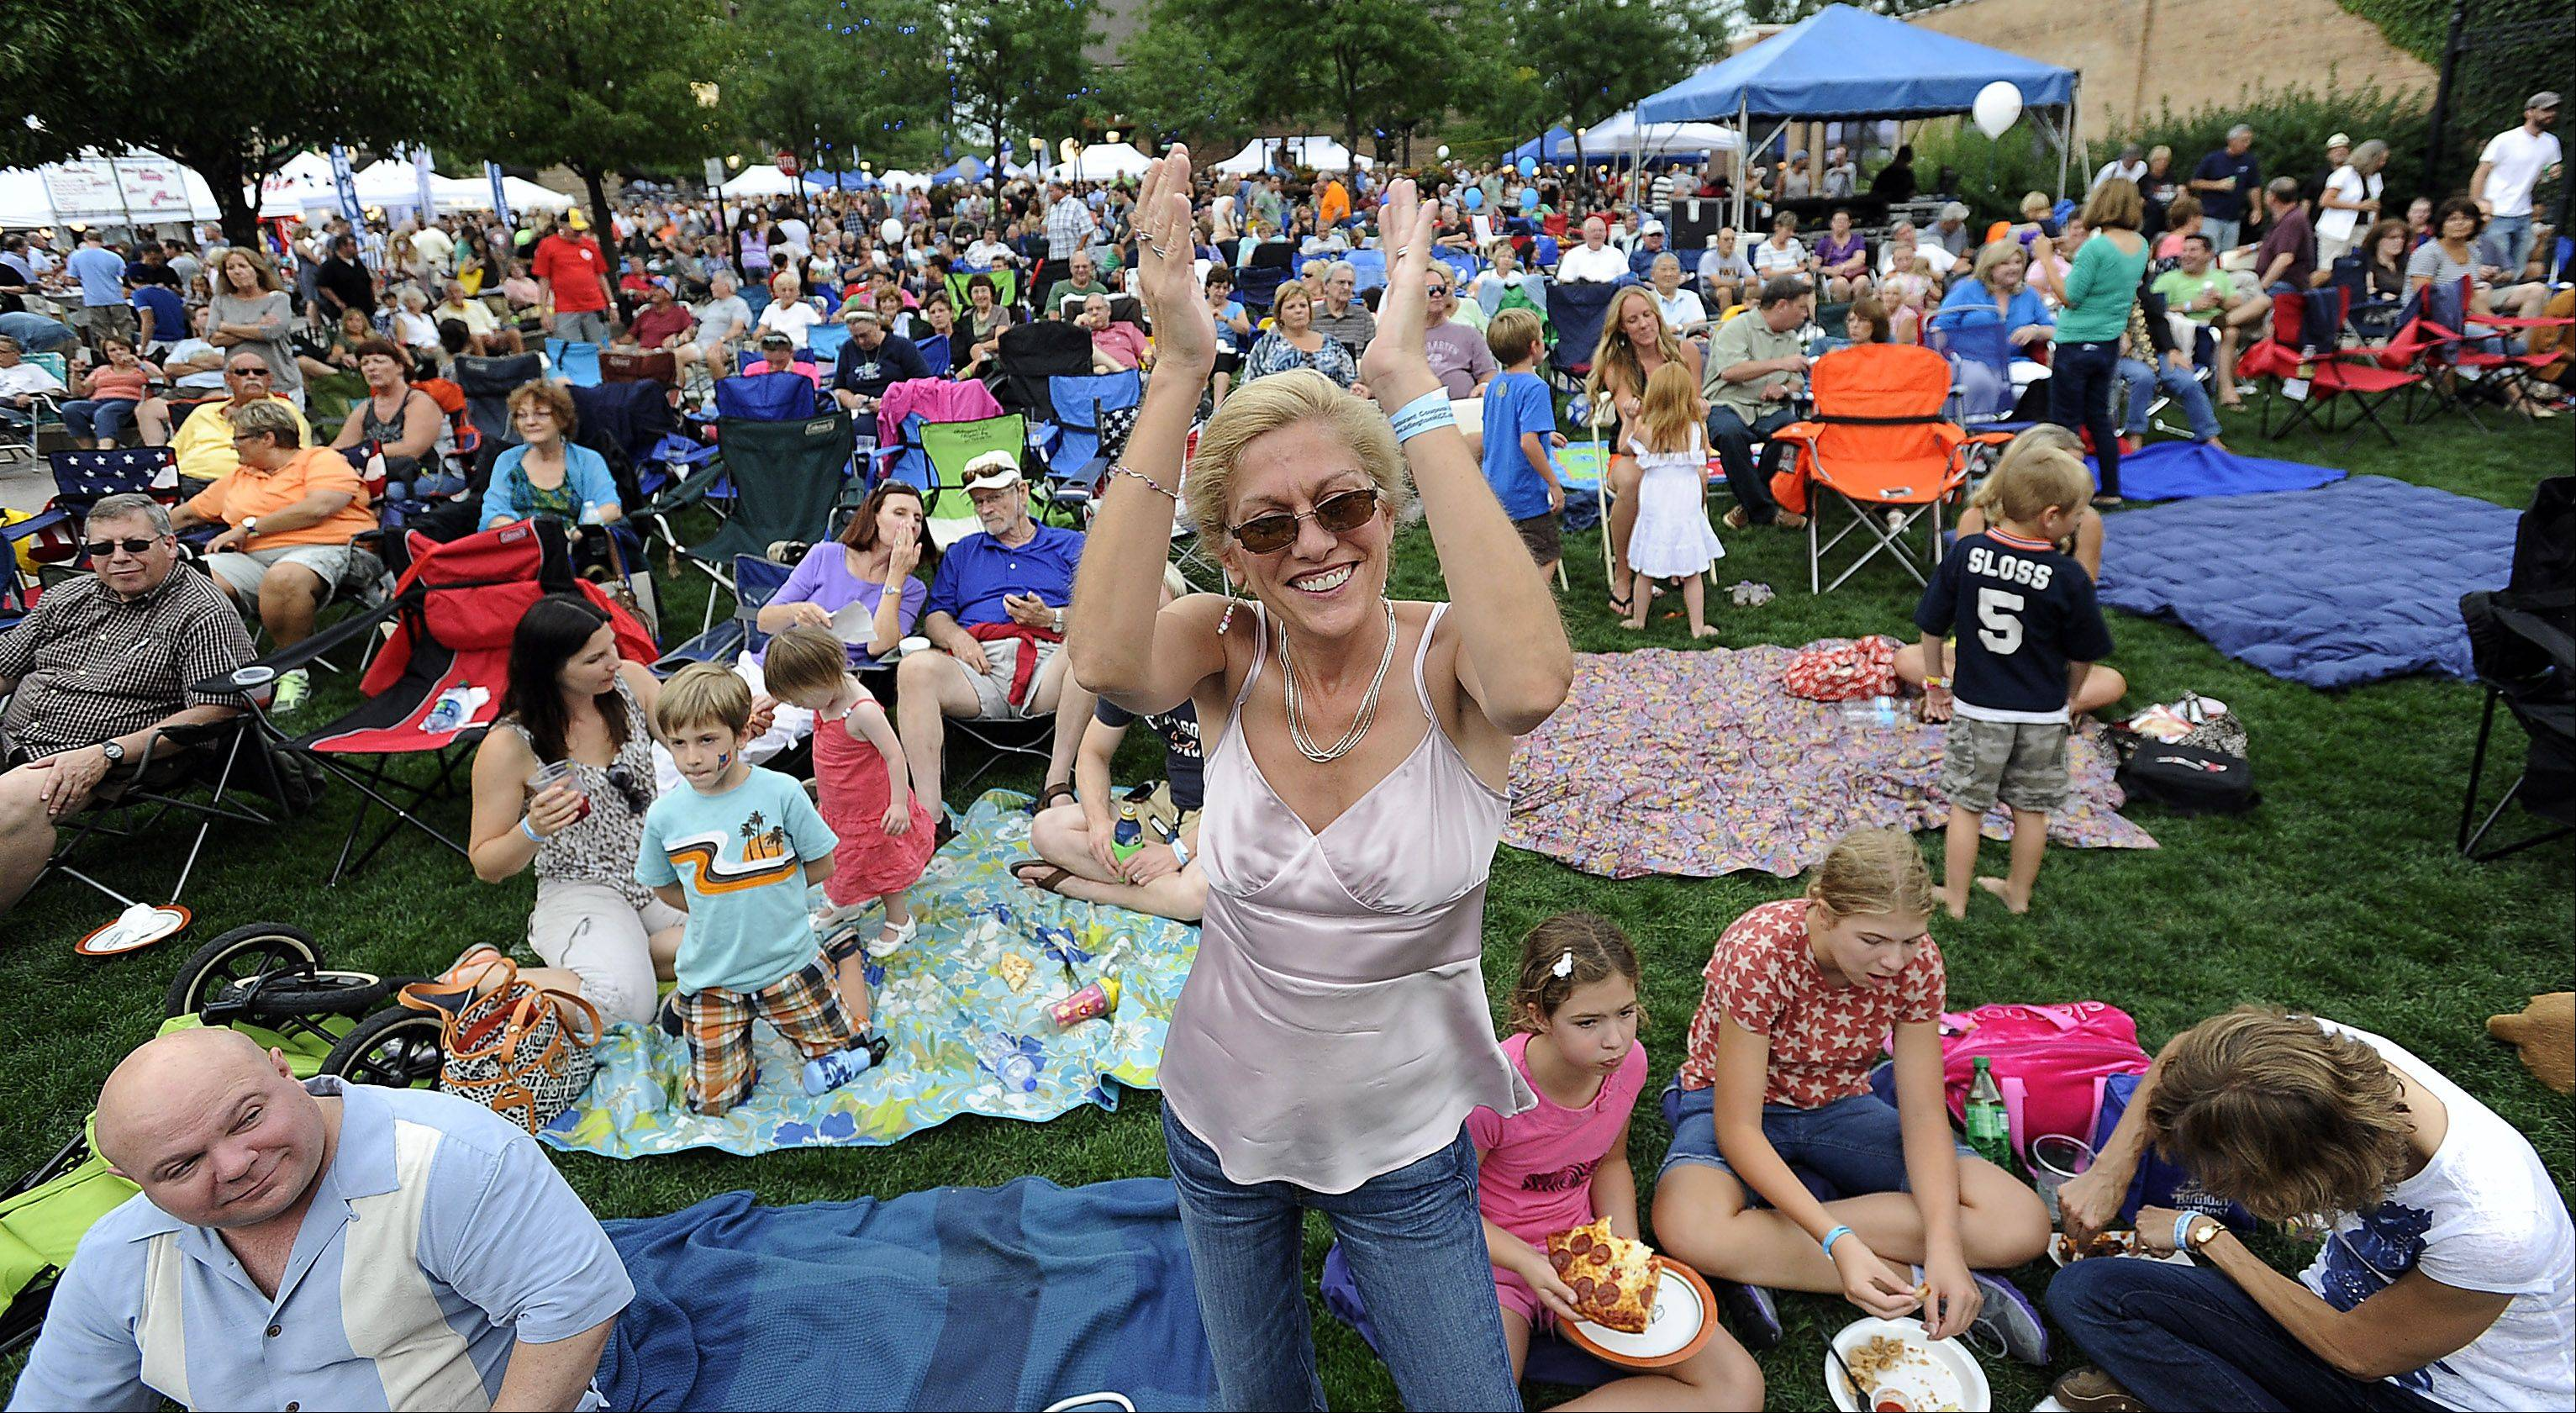 Mark Welsh/mwelsh@dailyherald.comDancing to the the song Blurred Lines played by the band on stage, Paula Euchner of Arlington Heights celebrates at the Mane Event in downtown Arlington Heights on Friday.